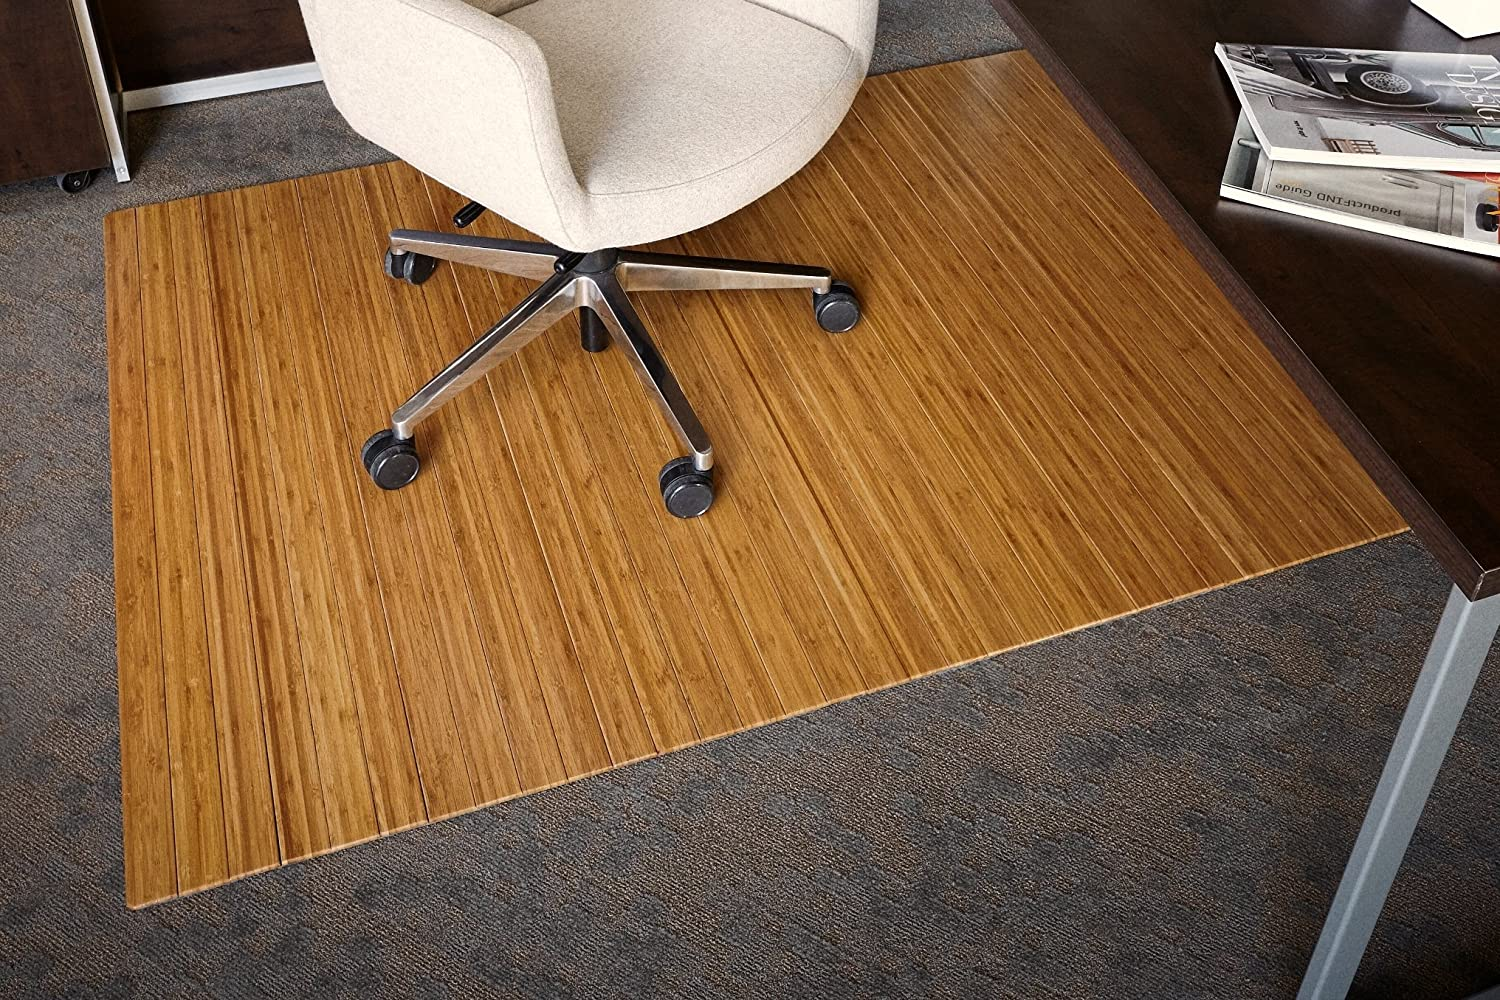 Anji Mountain Bamboo Roll-Up Chair Mat without Lip, Natural, 48 x 72 , 5mm Thick